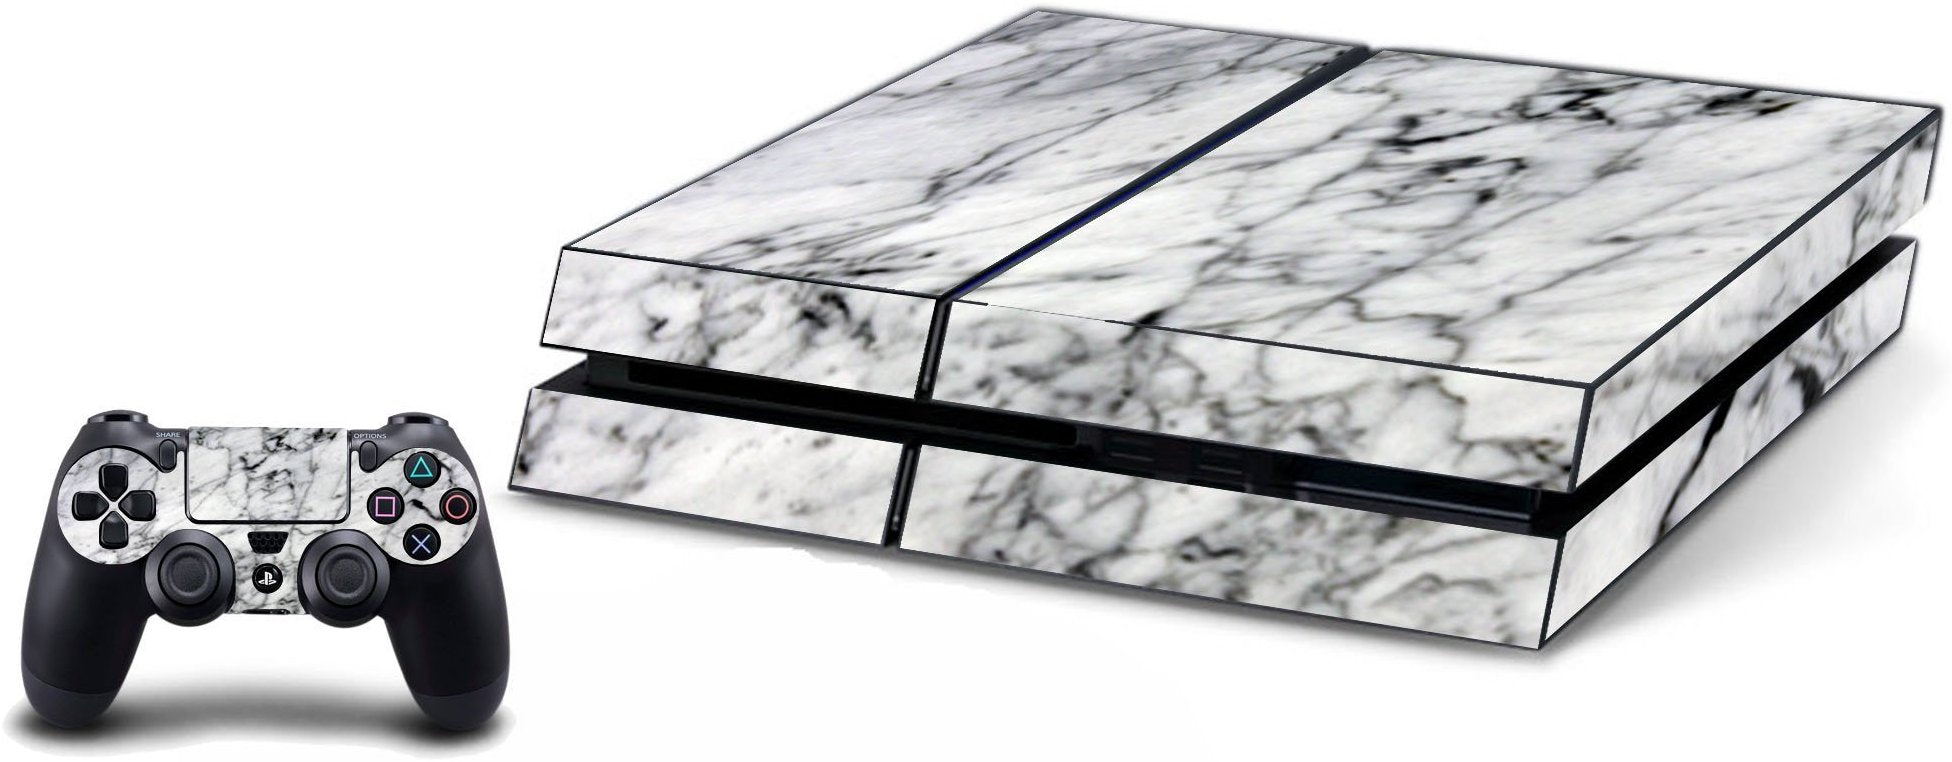 VWAQ PS4 Marble Skins Console And Controller Rock Skin For Playstation 4 - VWAQ Vinyl Wall Art Quotes and Prints